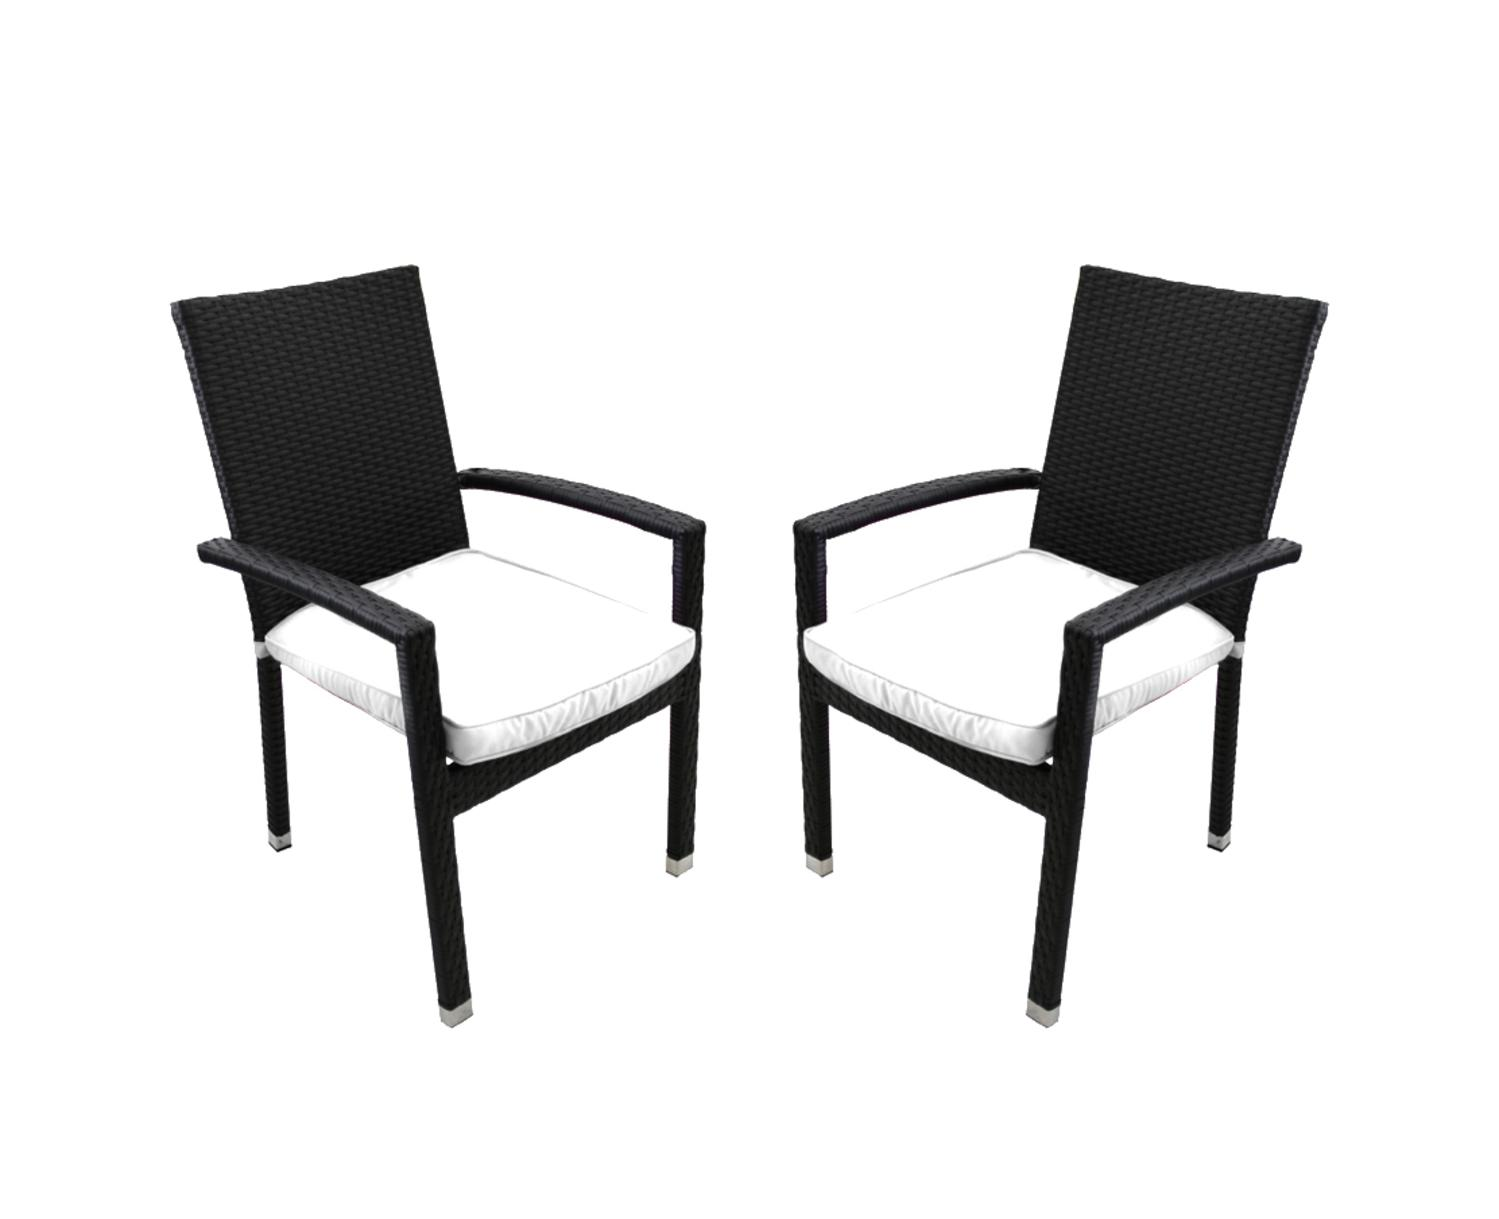 Set of 2 Black Resin Wicker Outdoor Patio Furniture Dining Chairs White Cushions by CC Outdoor Living